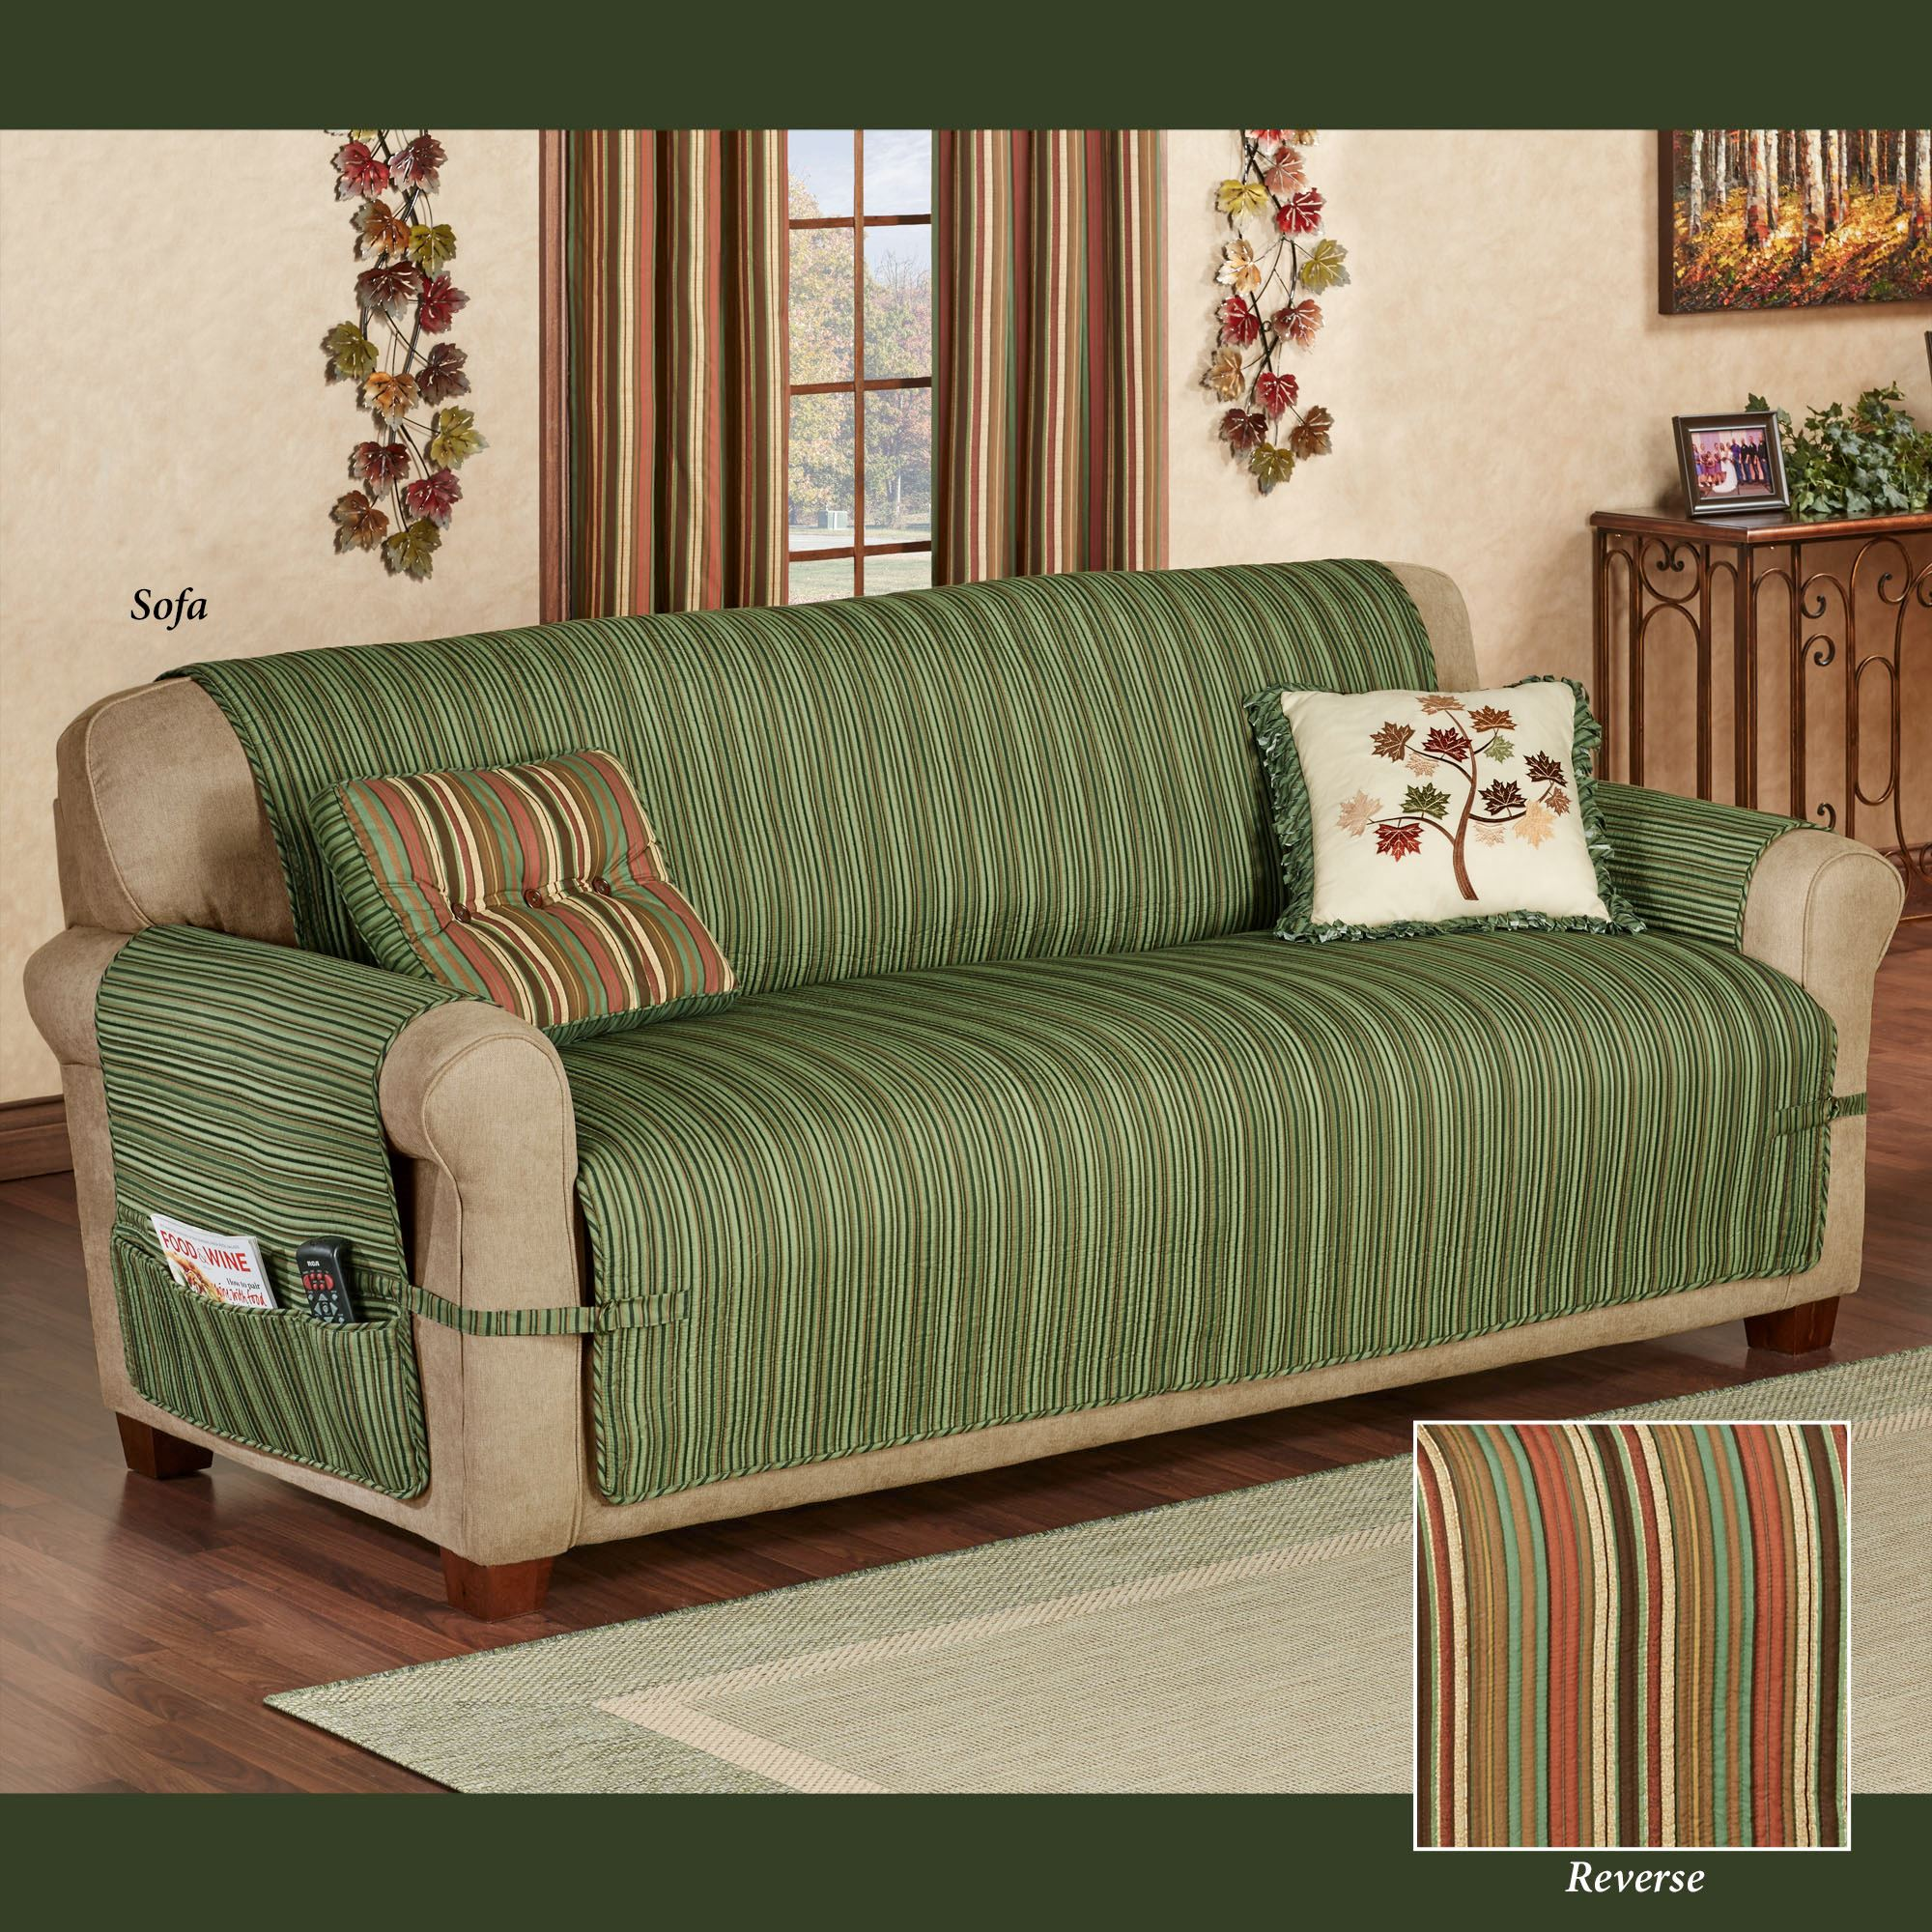 Fine Riverpark Reversible Striped Furniture Covers Andrewgaddart Wooden Chair Designs For Living Room Andrewgaddartcom